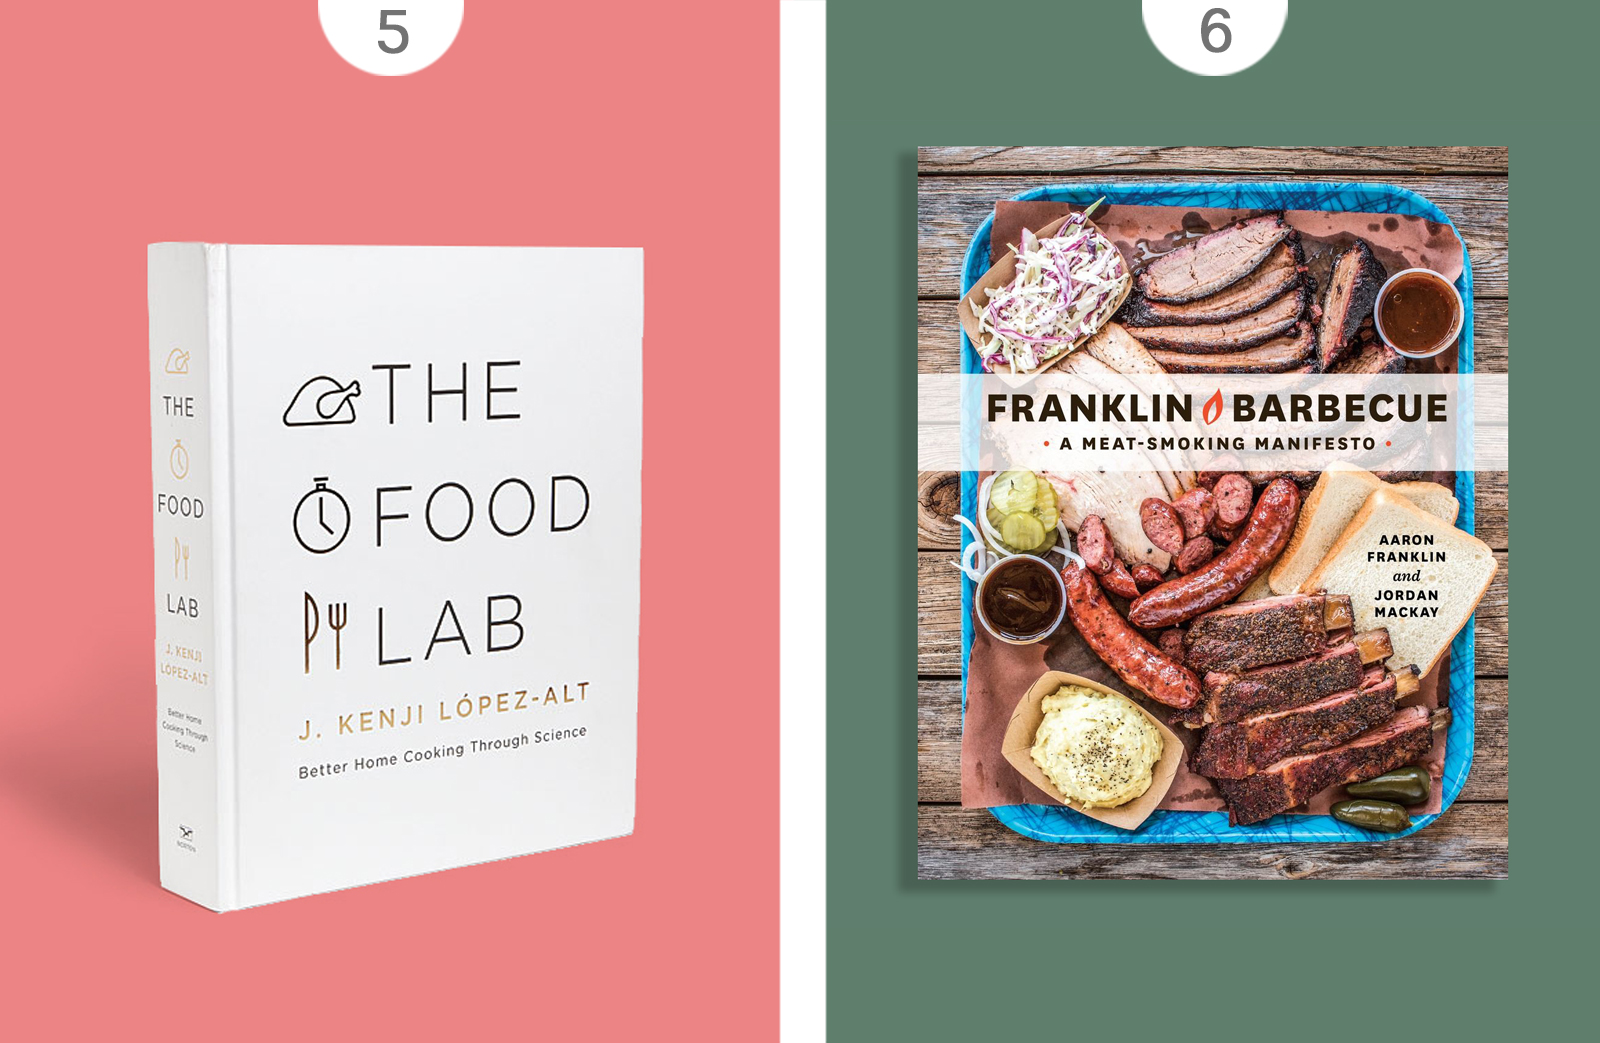 Cookbook gift guide 2015 spoon fork bacon 5 the food lab by j kenji lpez alt you guys this book is awesome if you have a food nerd friend who is always in the kitchen trying to figure out why forumfinder Choice Image